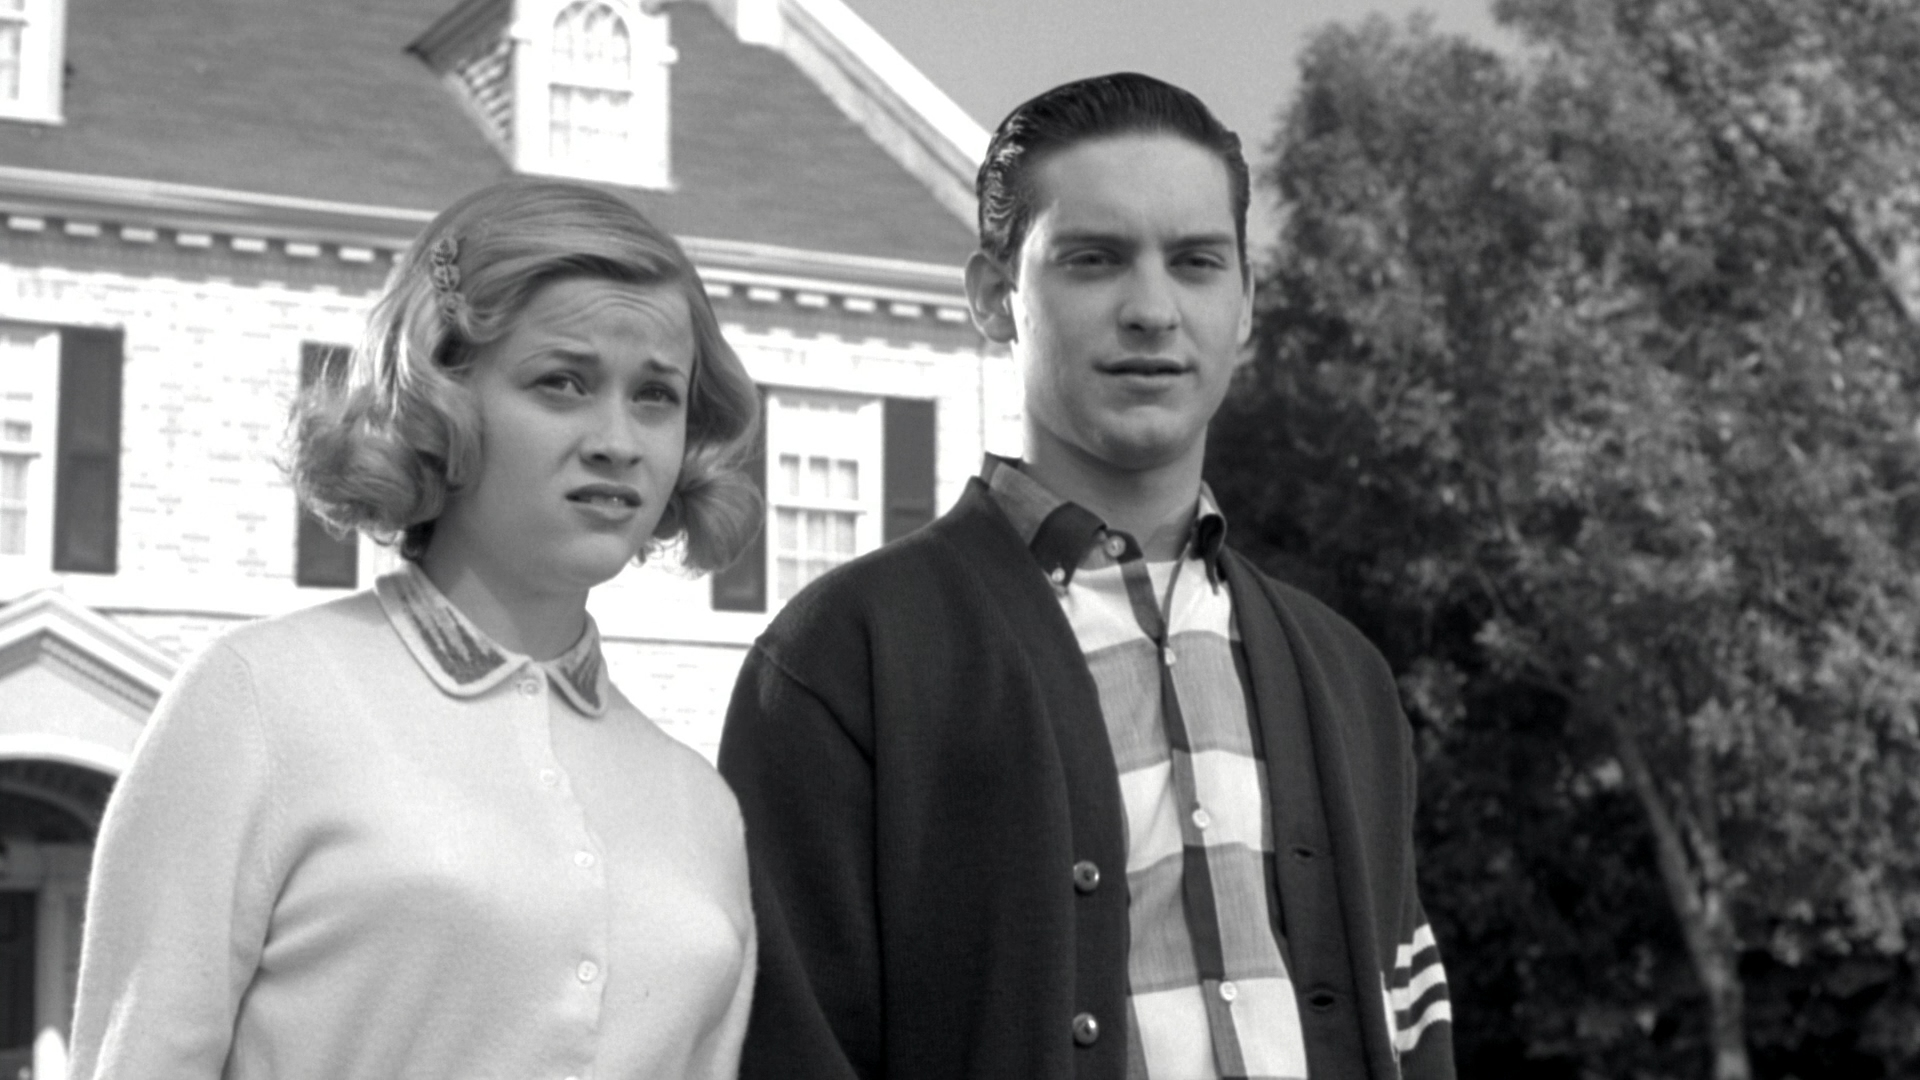 an analysis of the film pleasantville Pleasantville film analysis by: claire, rachel & jireh juxtaposition example 2 two contrasting situations in the same shot real life family on left side of lamp, ideal family on right side.